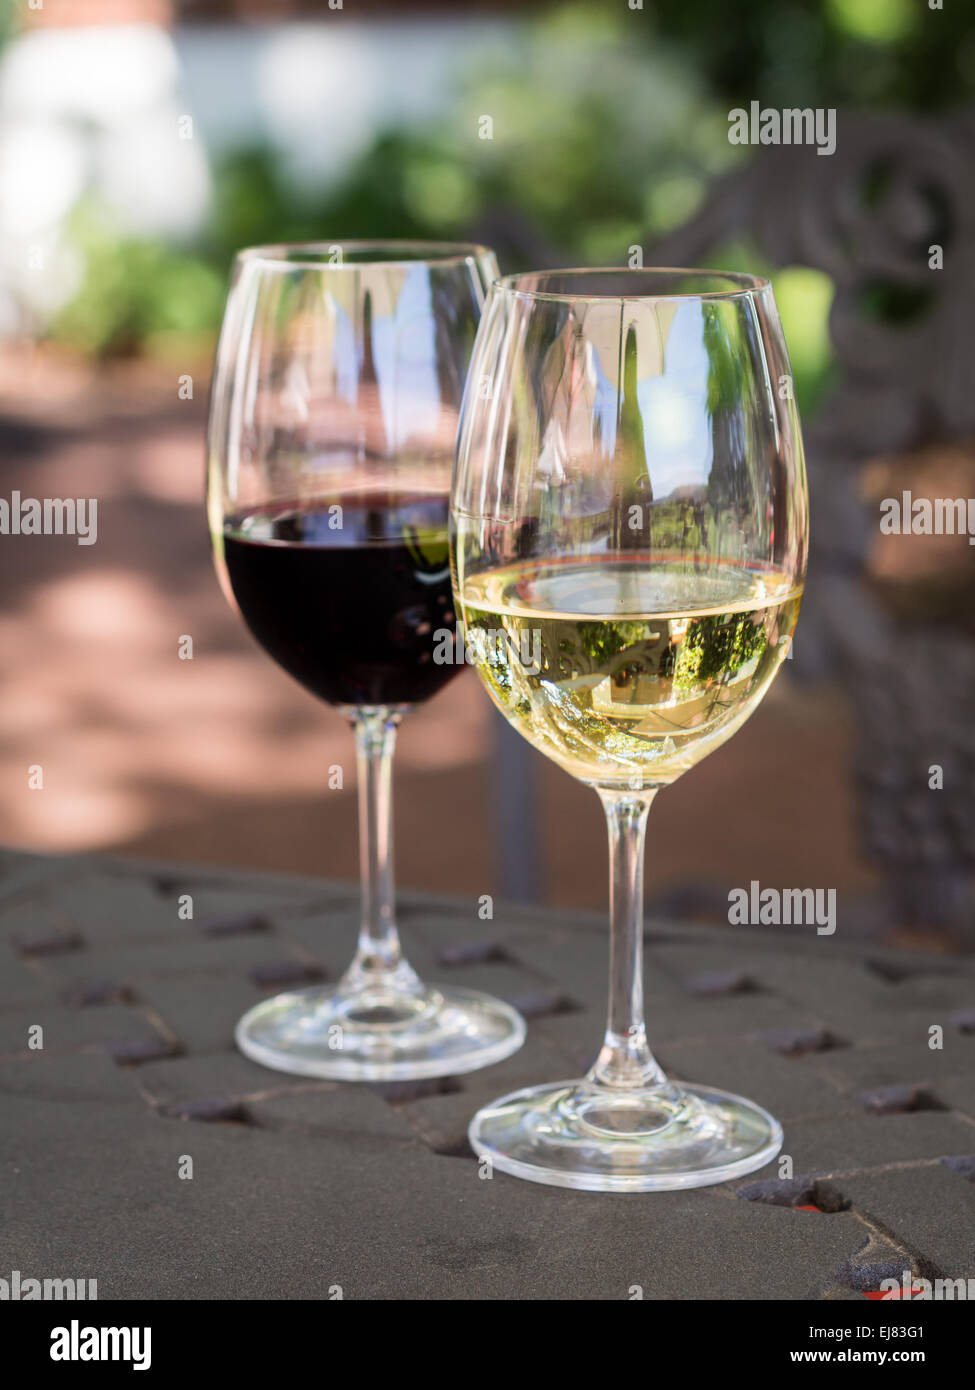 White and red South African wines in wine glasses on a garden table.Stock Photo